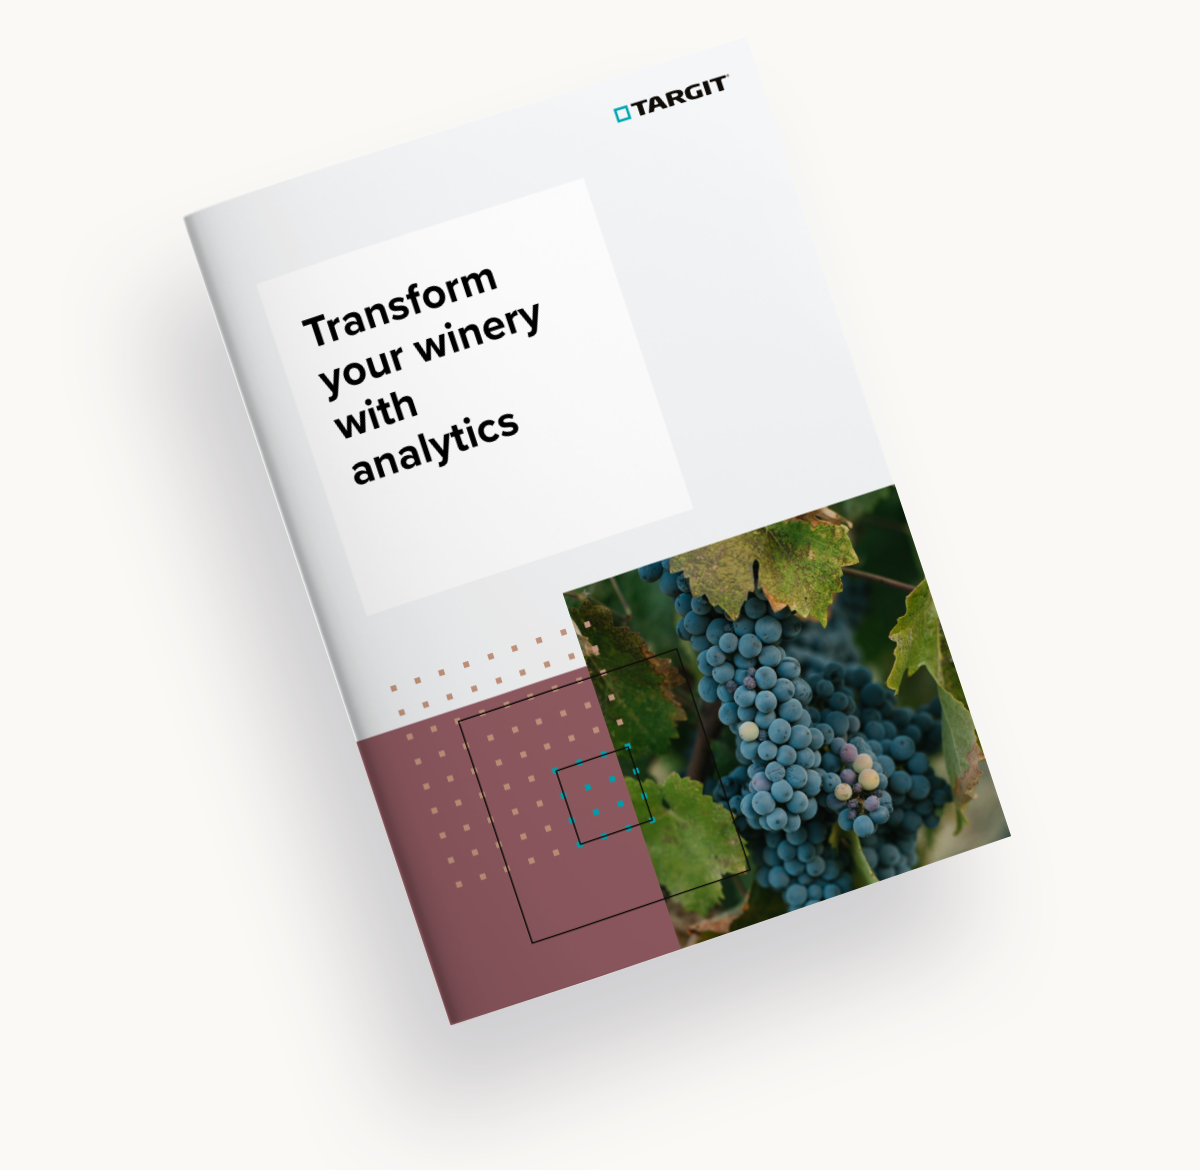 How to transform your winery with analytics